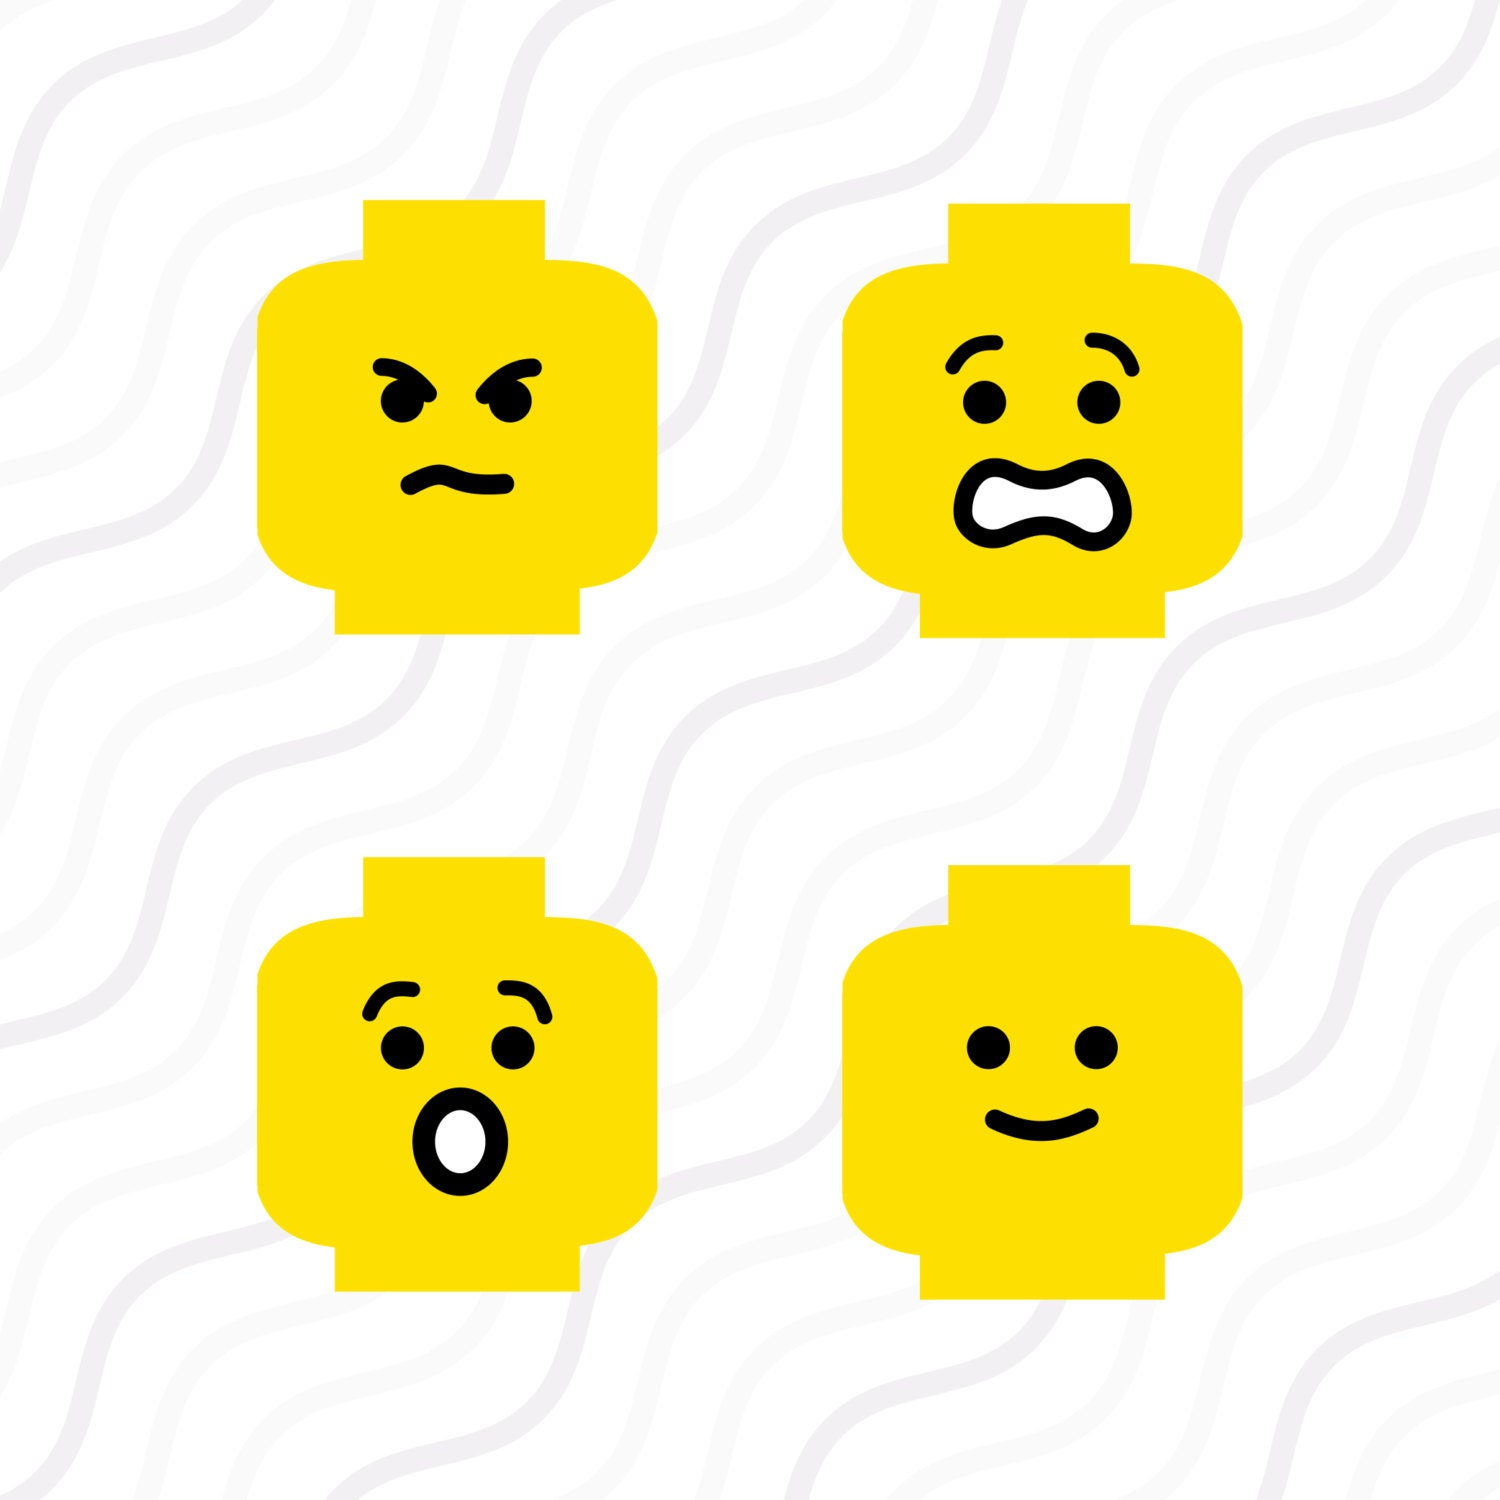 Download Lego Face SVG Lego SVG Lego Head SVG Cut by svgsilhouettecuts